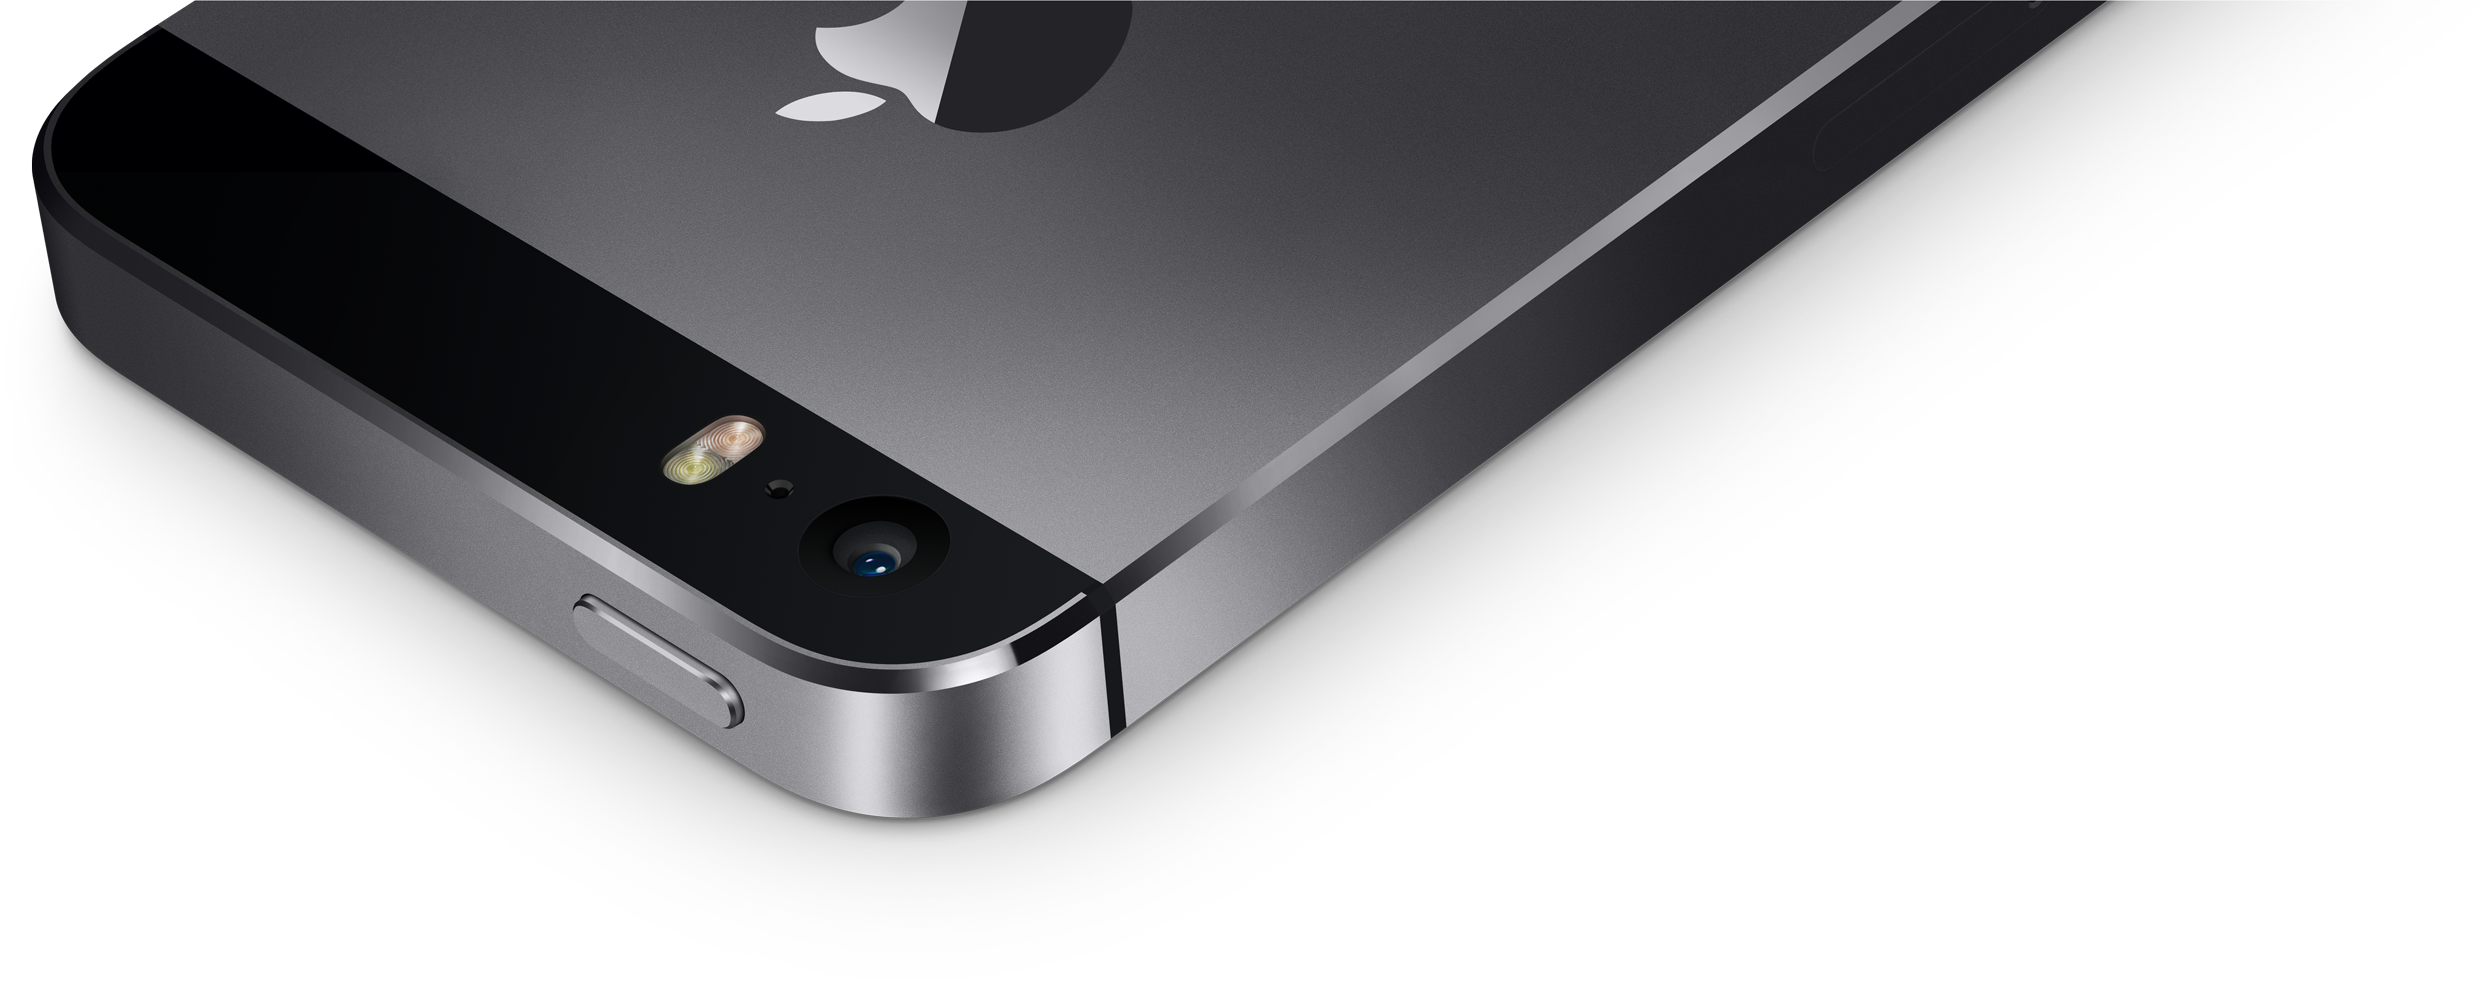 Clip camera iphone 5. How does the s